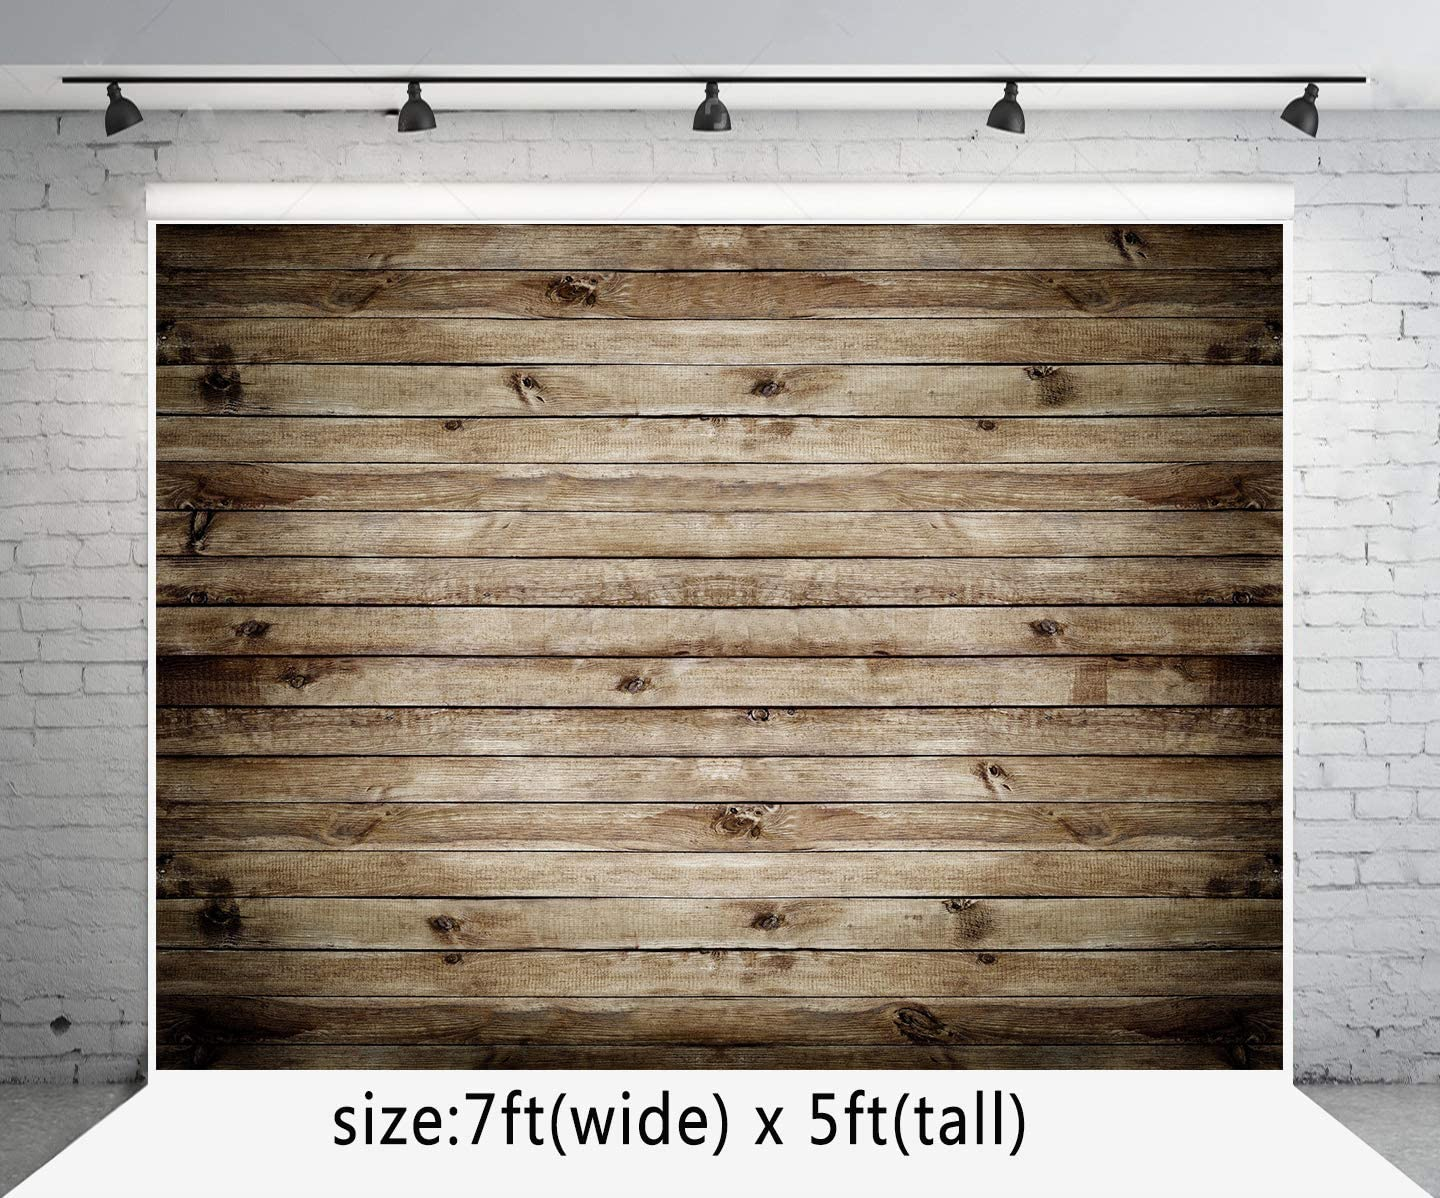 7x5 ft Microfiber Light Brown Wood Wall Backdrops for Photography Bridal Birthday Baby Show Photo Studio Background Booth Prop